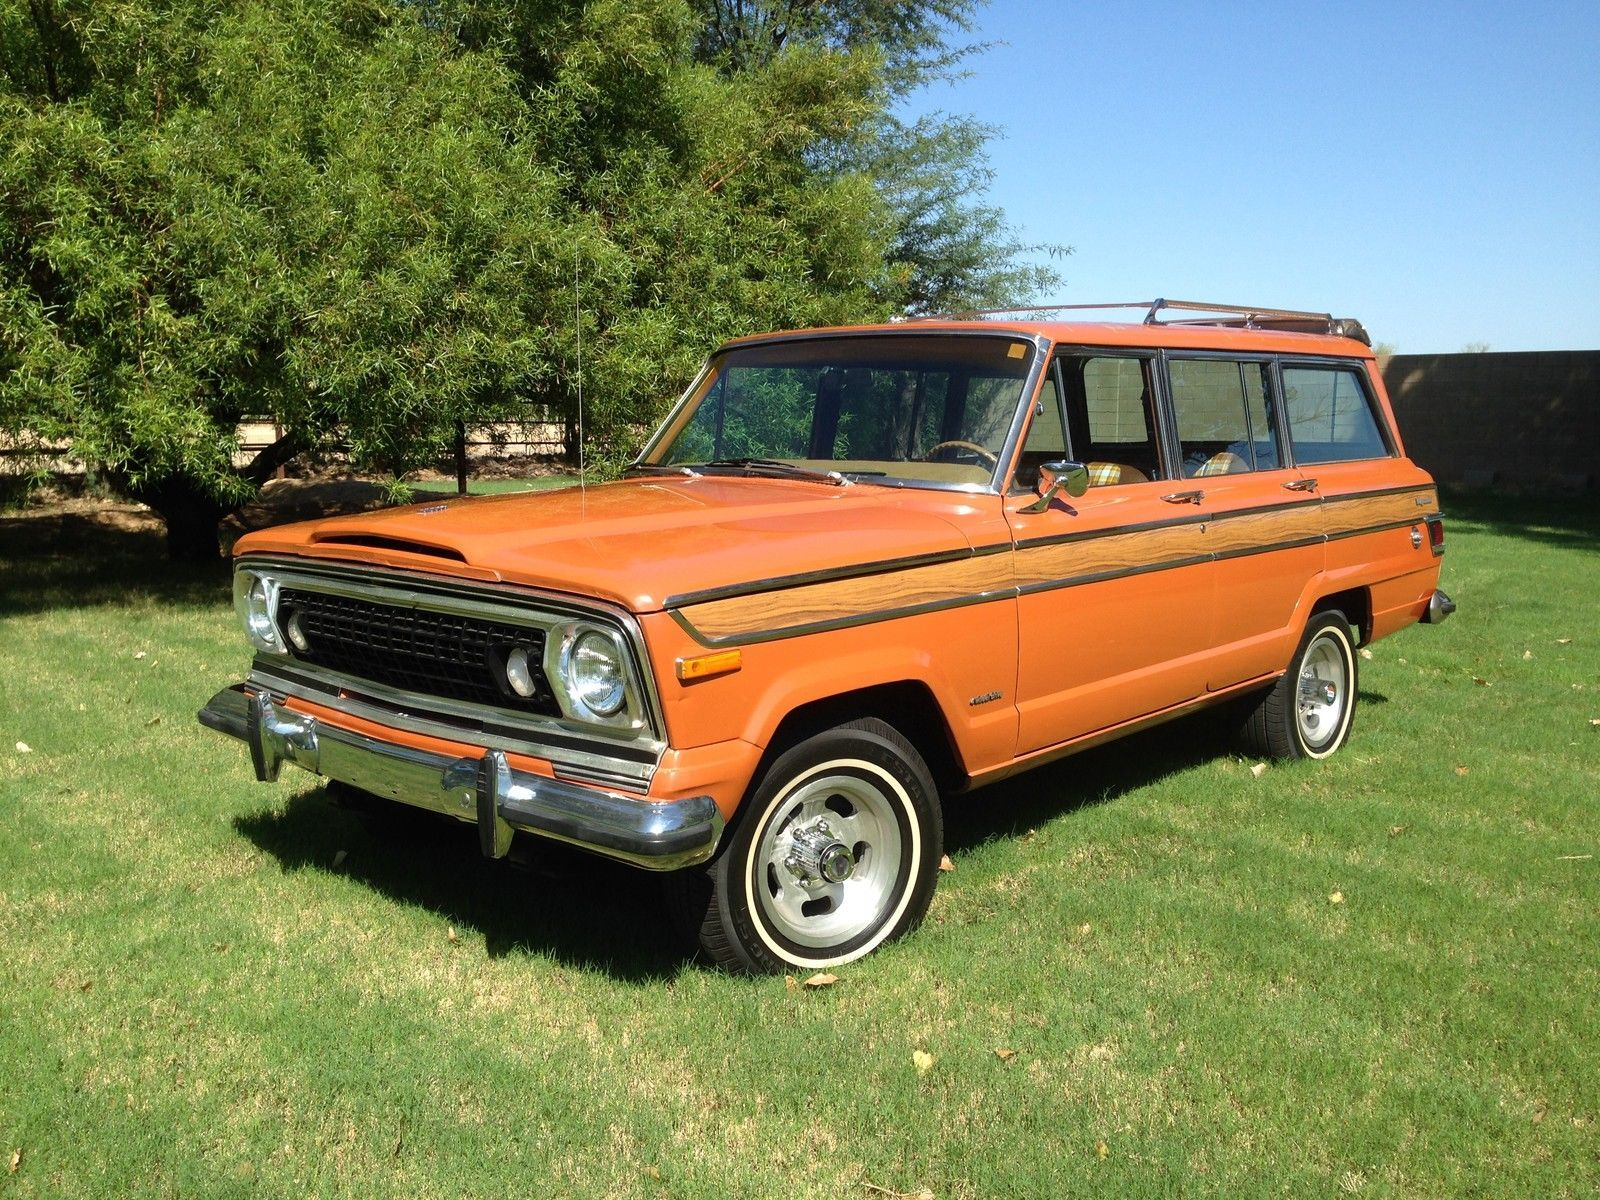 Jeep Wagoneer Base Sport Utility 4 Door